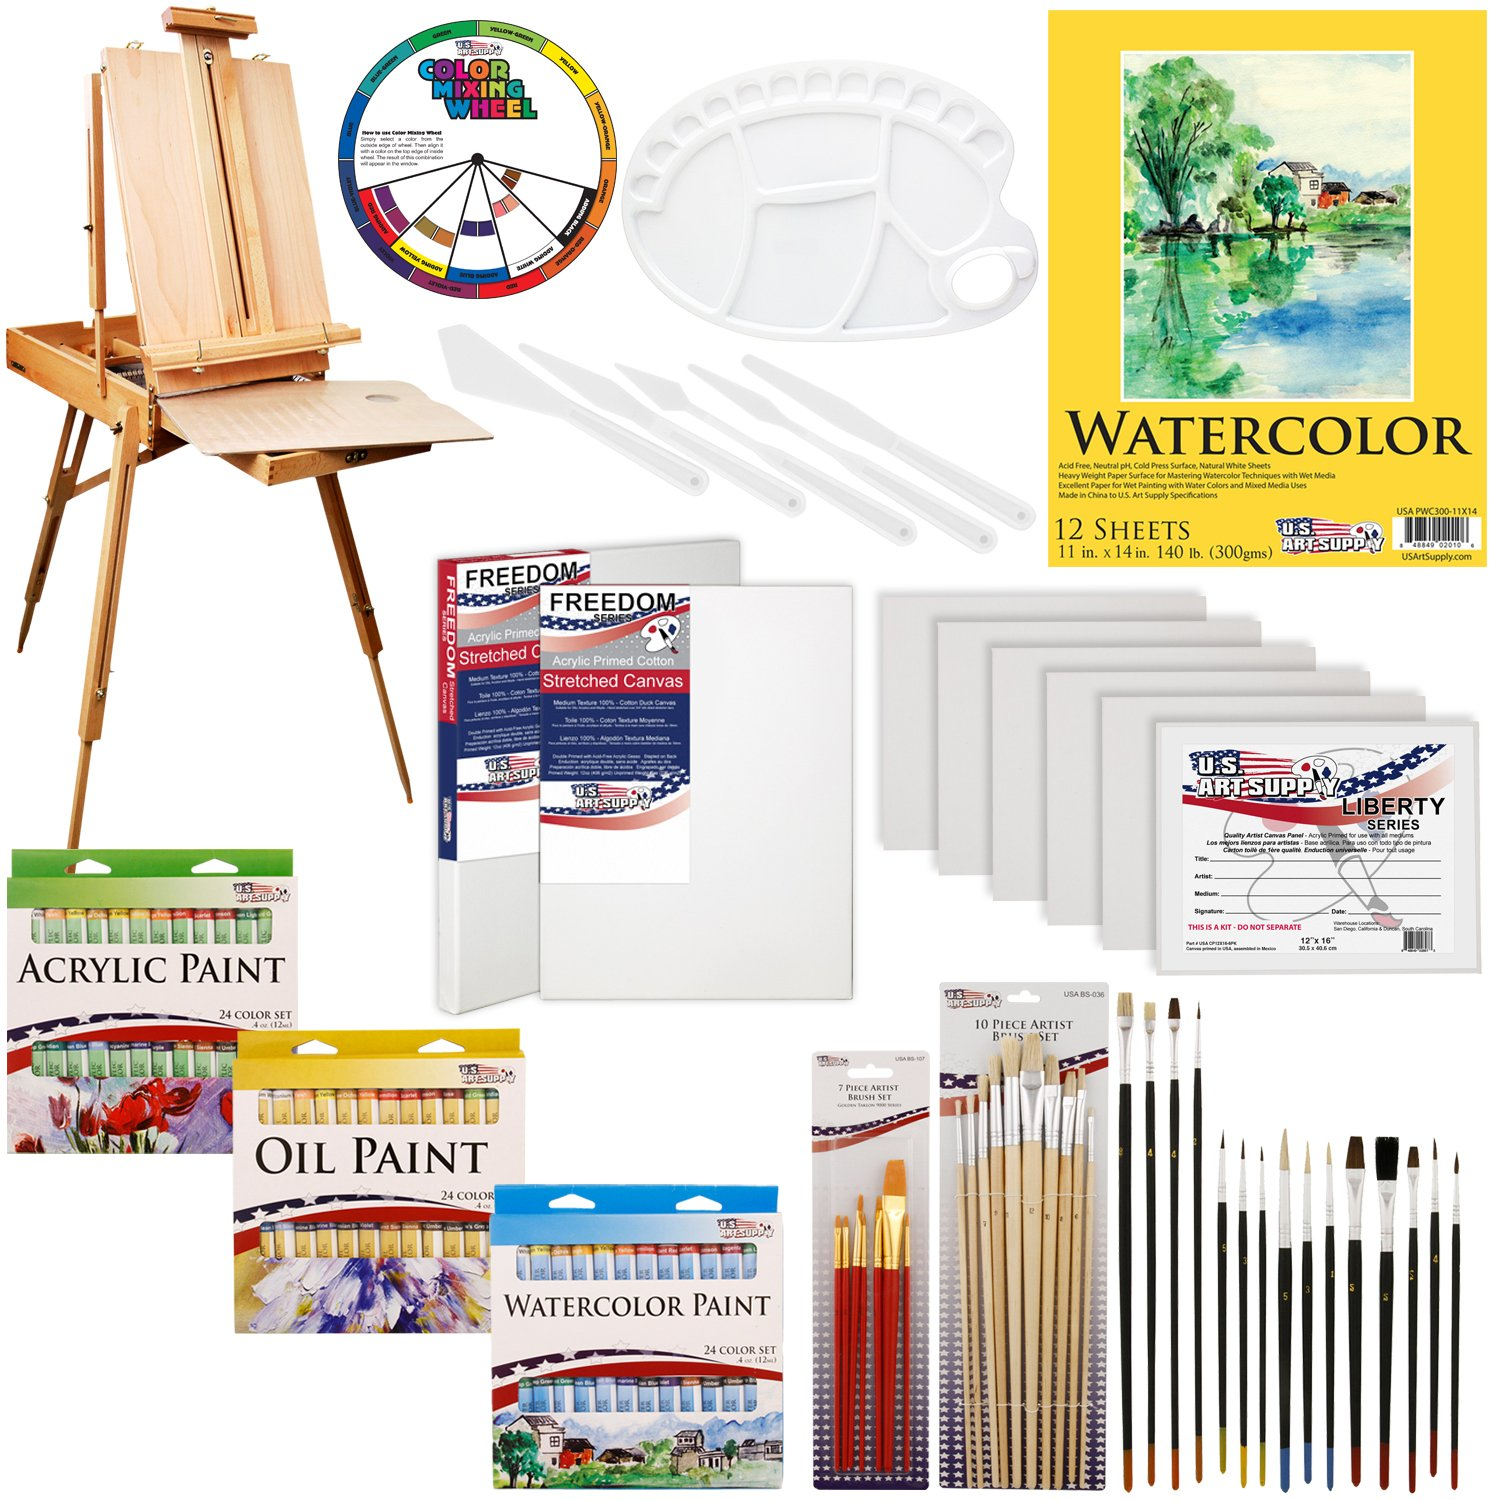 US ART SUPPLY 121-Piece Custom Artist Painting Kit with Coronado Sonoma Easel, 24-Tubes Acrylic Colors, 24-Tubes Oil Painting Colors, 24-tubes Watercolor Painting Colors, 2-each 16''x20'' Artist Quality Stretched Canvases, 6-each 11''x14'' Canvas Panels, 11''x by US Art Supply